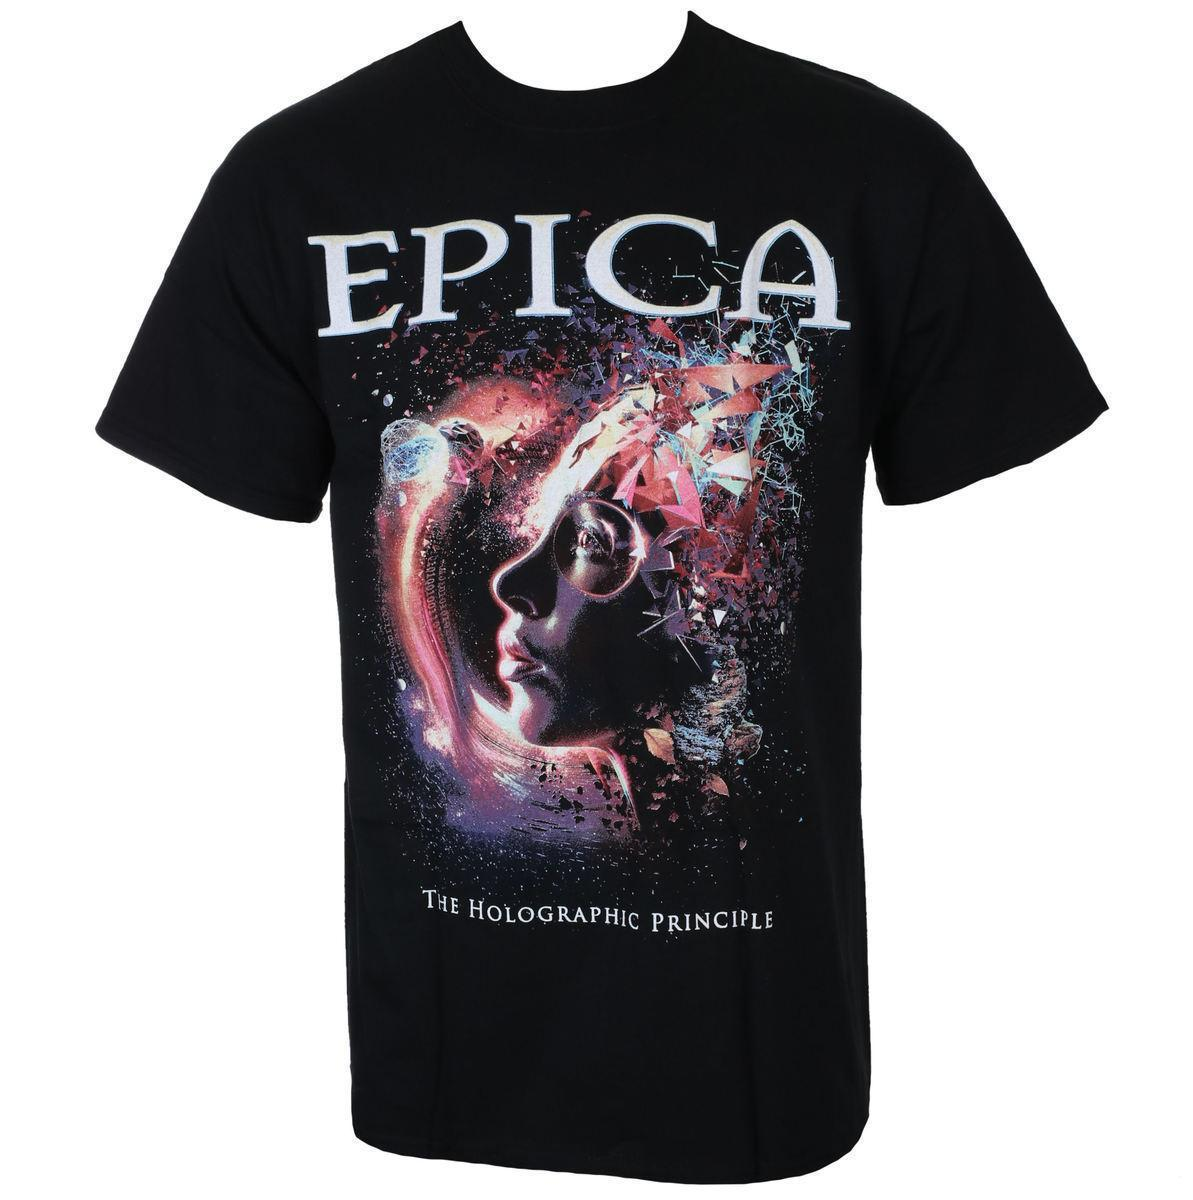 Epica The Holographic Principle T-shirt Herrenmode Musik